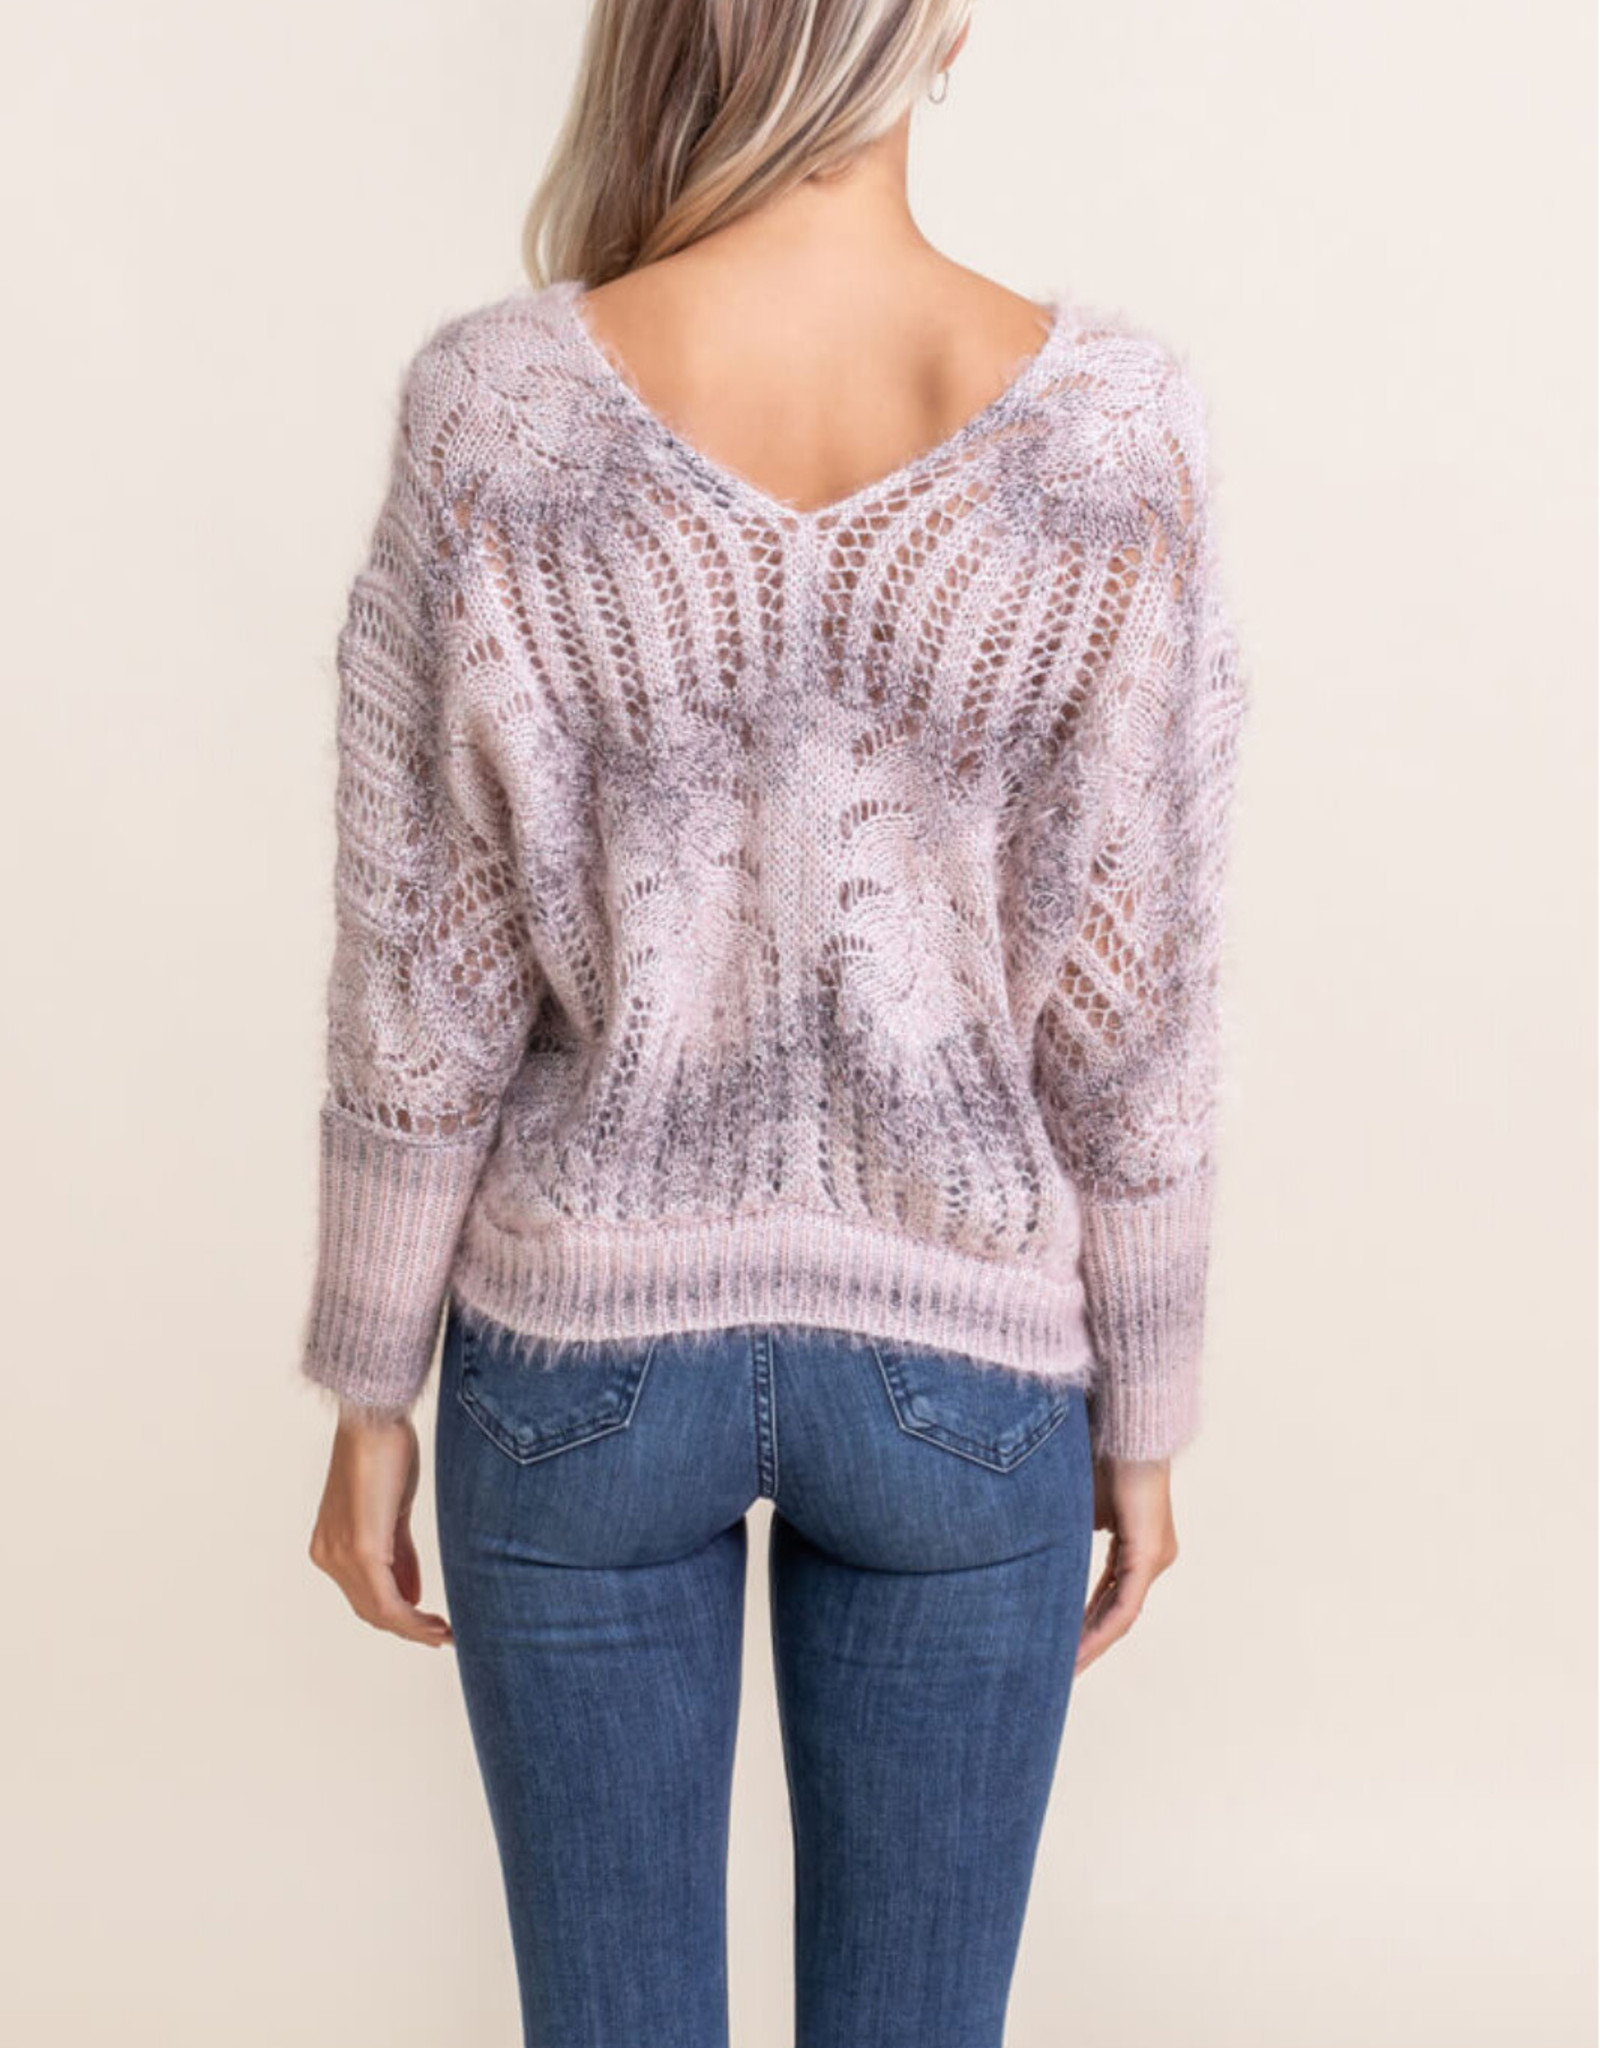 Lush Clothing Open Knit Sweater